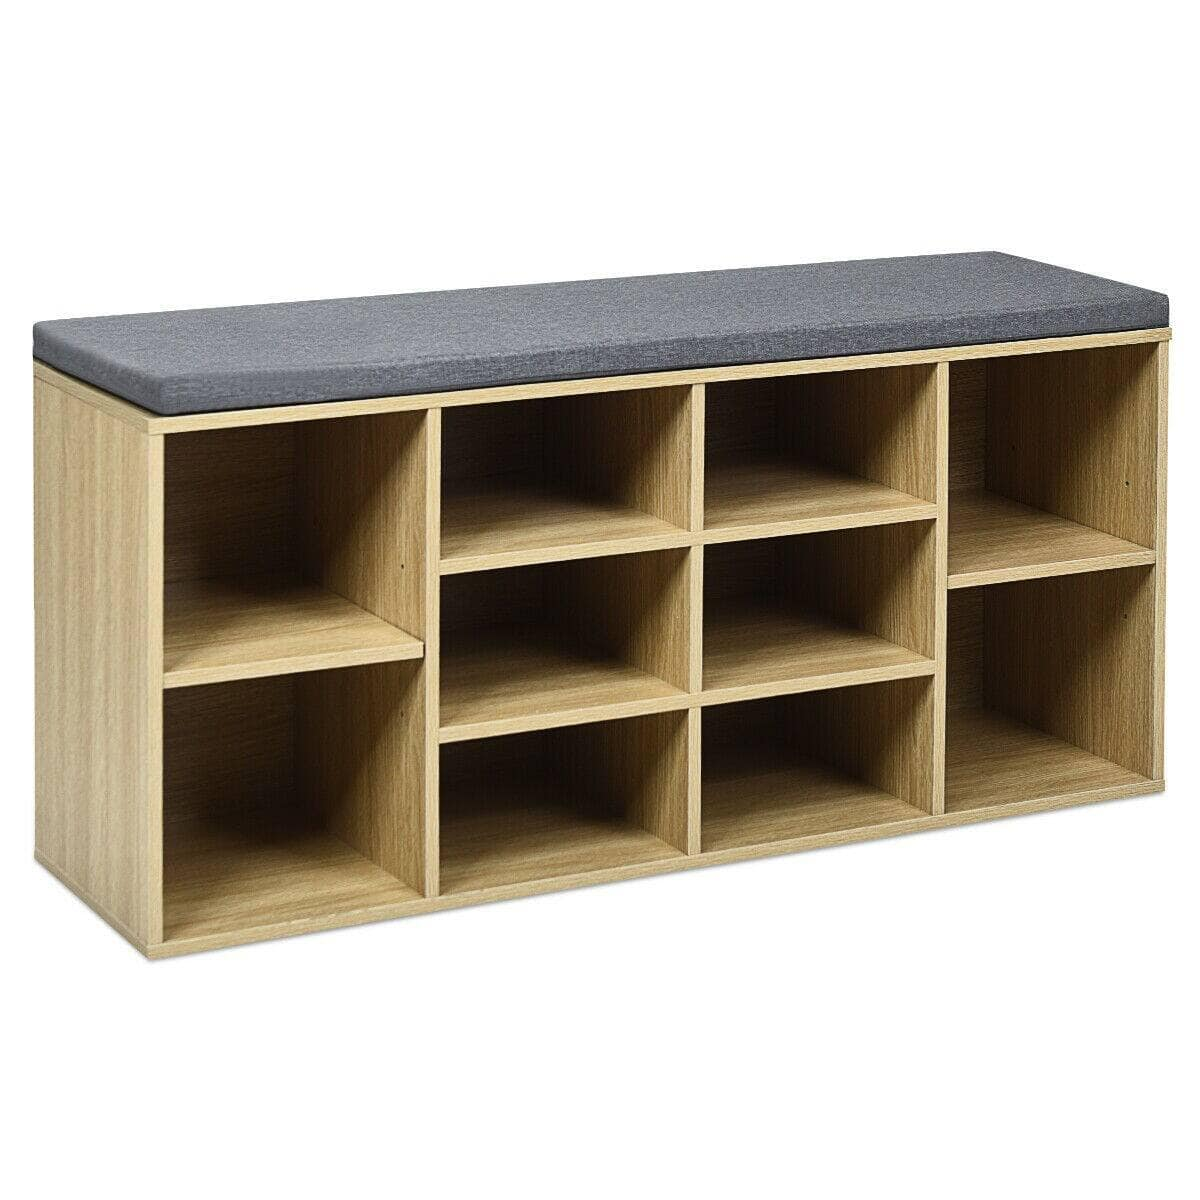 Costway 10-Cube Organizer Entryway Padded Shoe Storage Bench $73.95 with Free Shipping